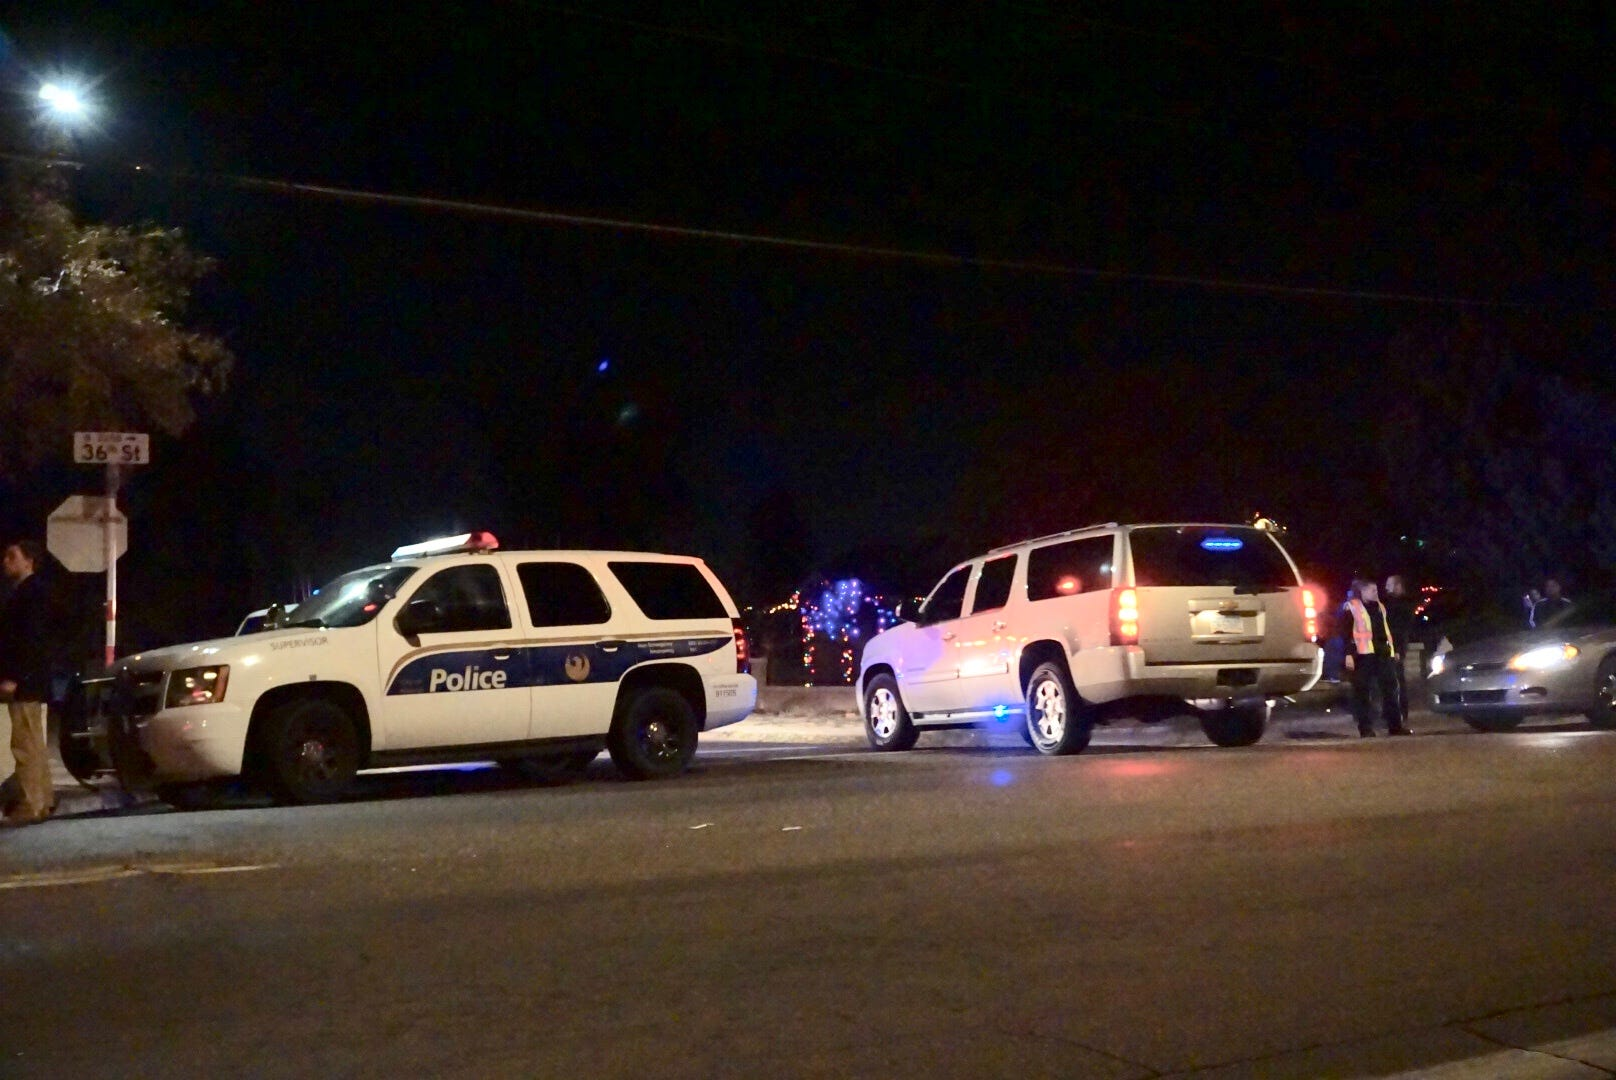 Police title officer in lethal capturing of a man in Phoenix